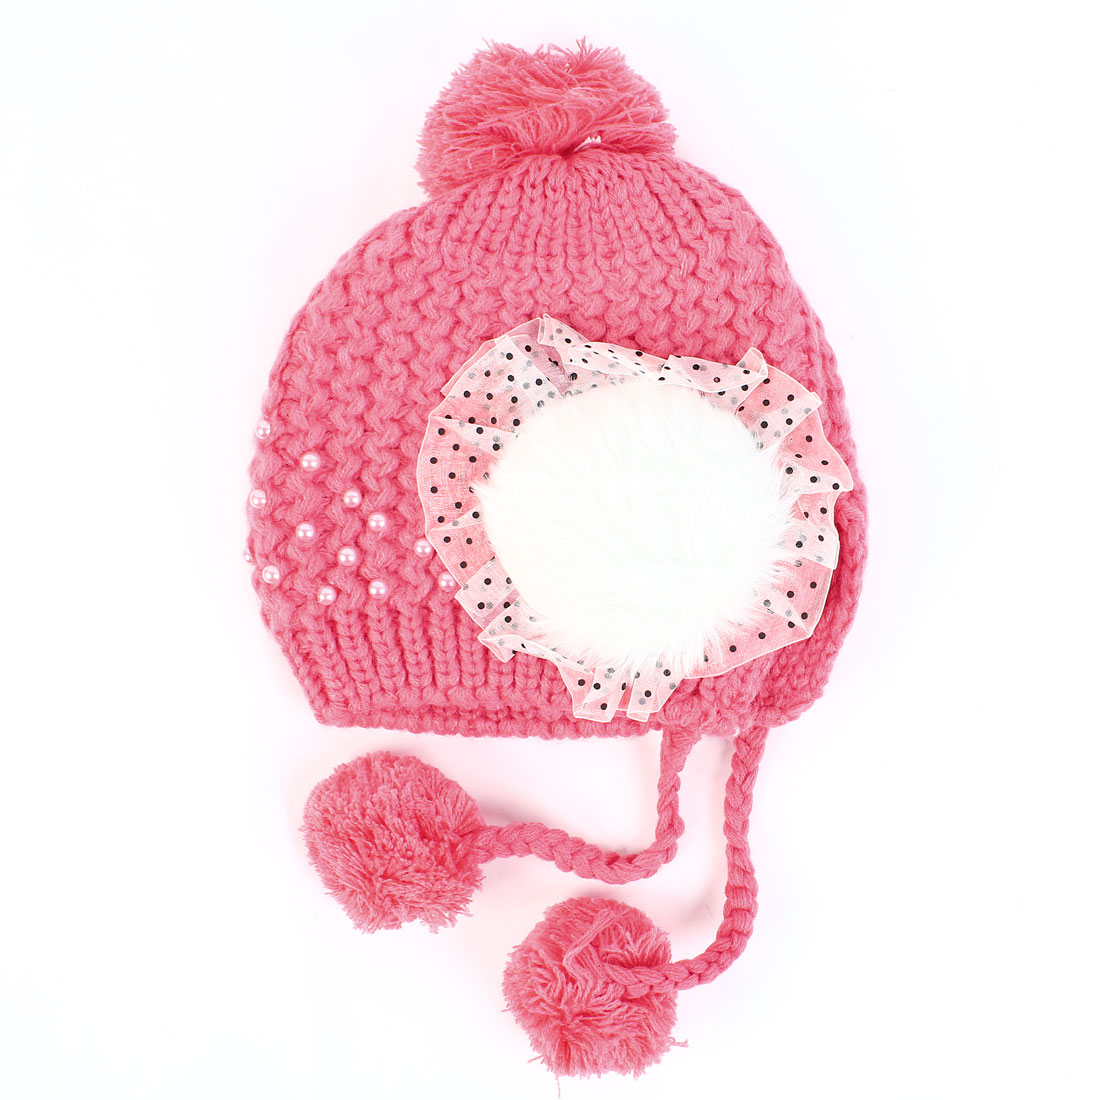 Women's Patchwork Design Pom Pom Winter Knitted Pearl Decor Ear Flap Hat Fuchsia